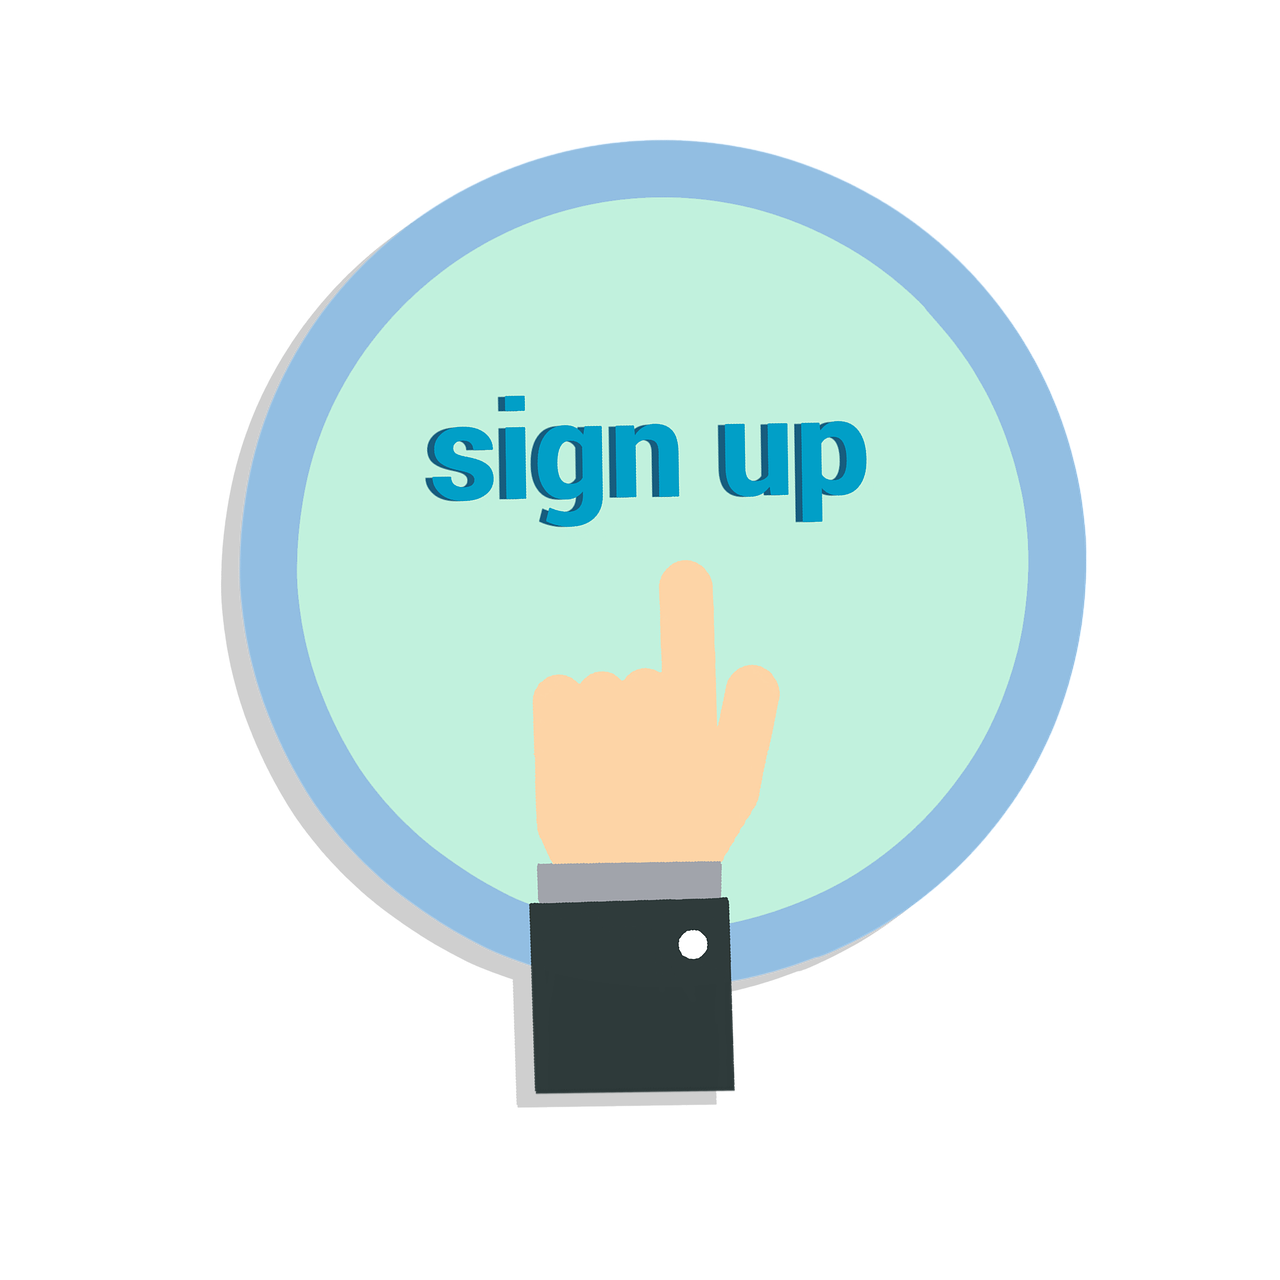 sign up now png